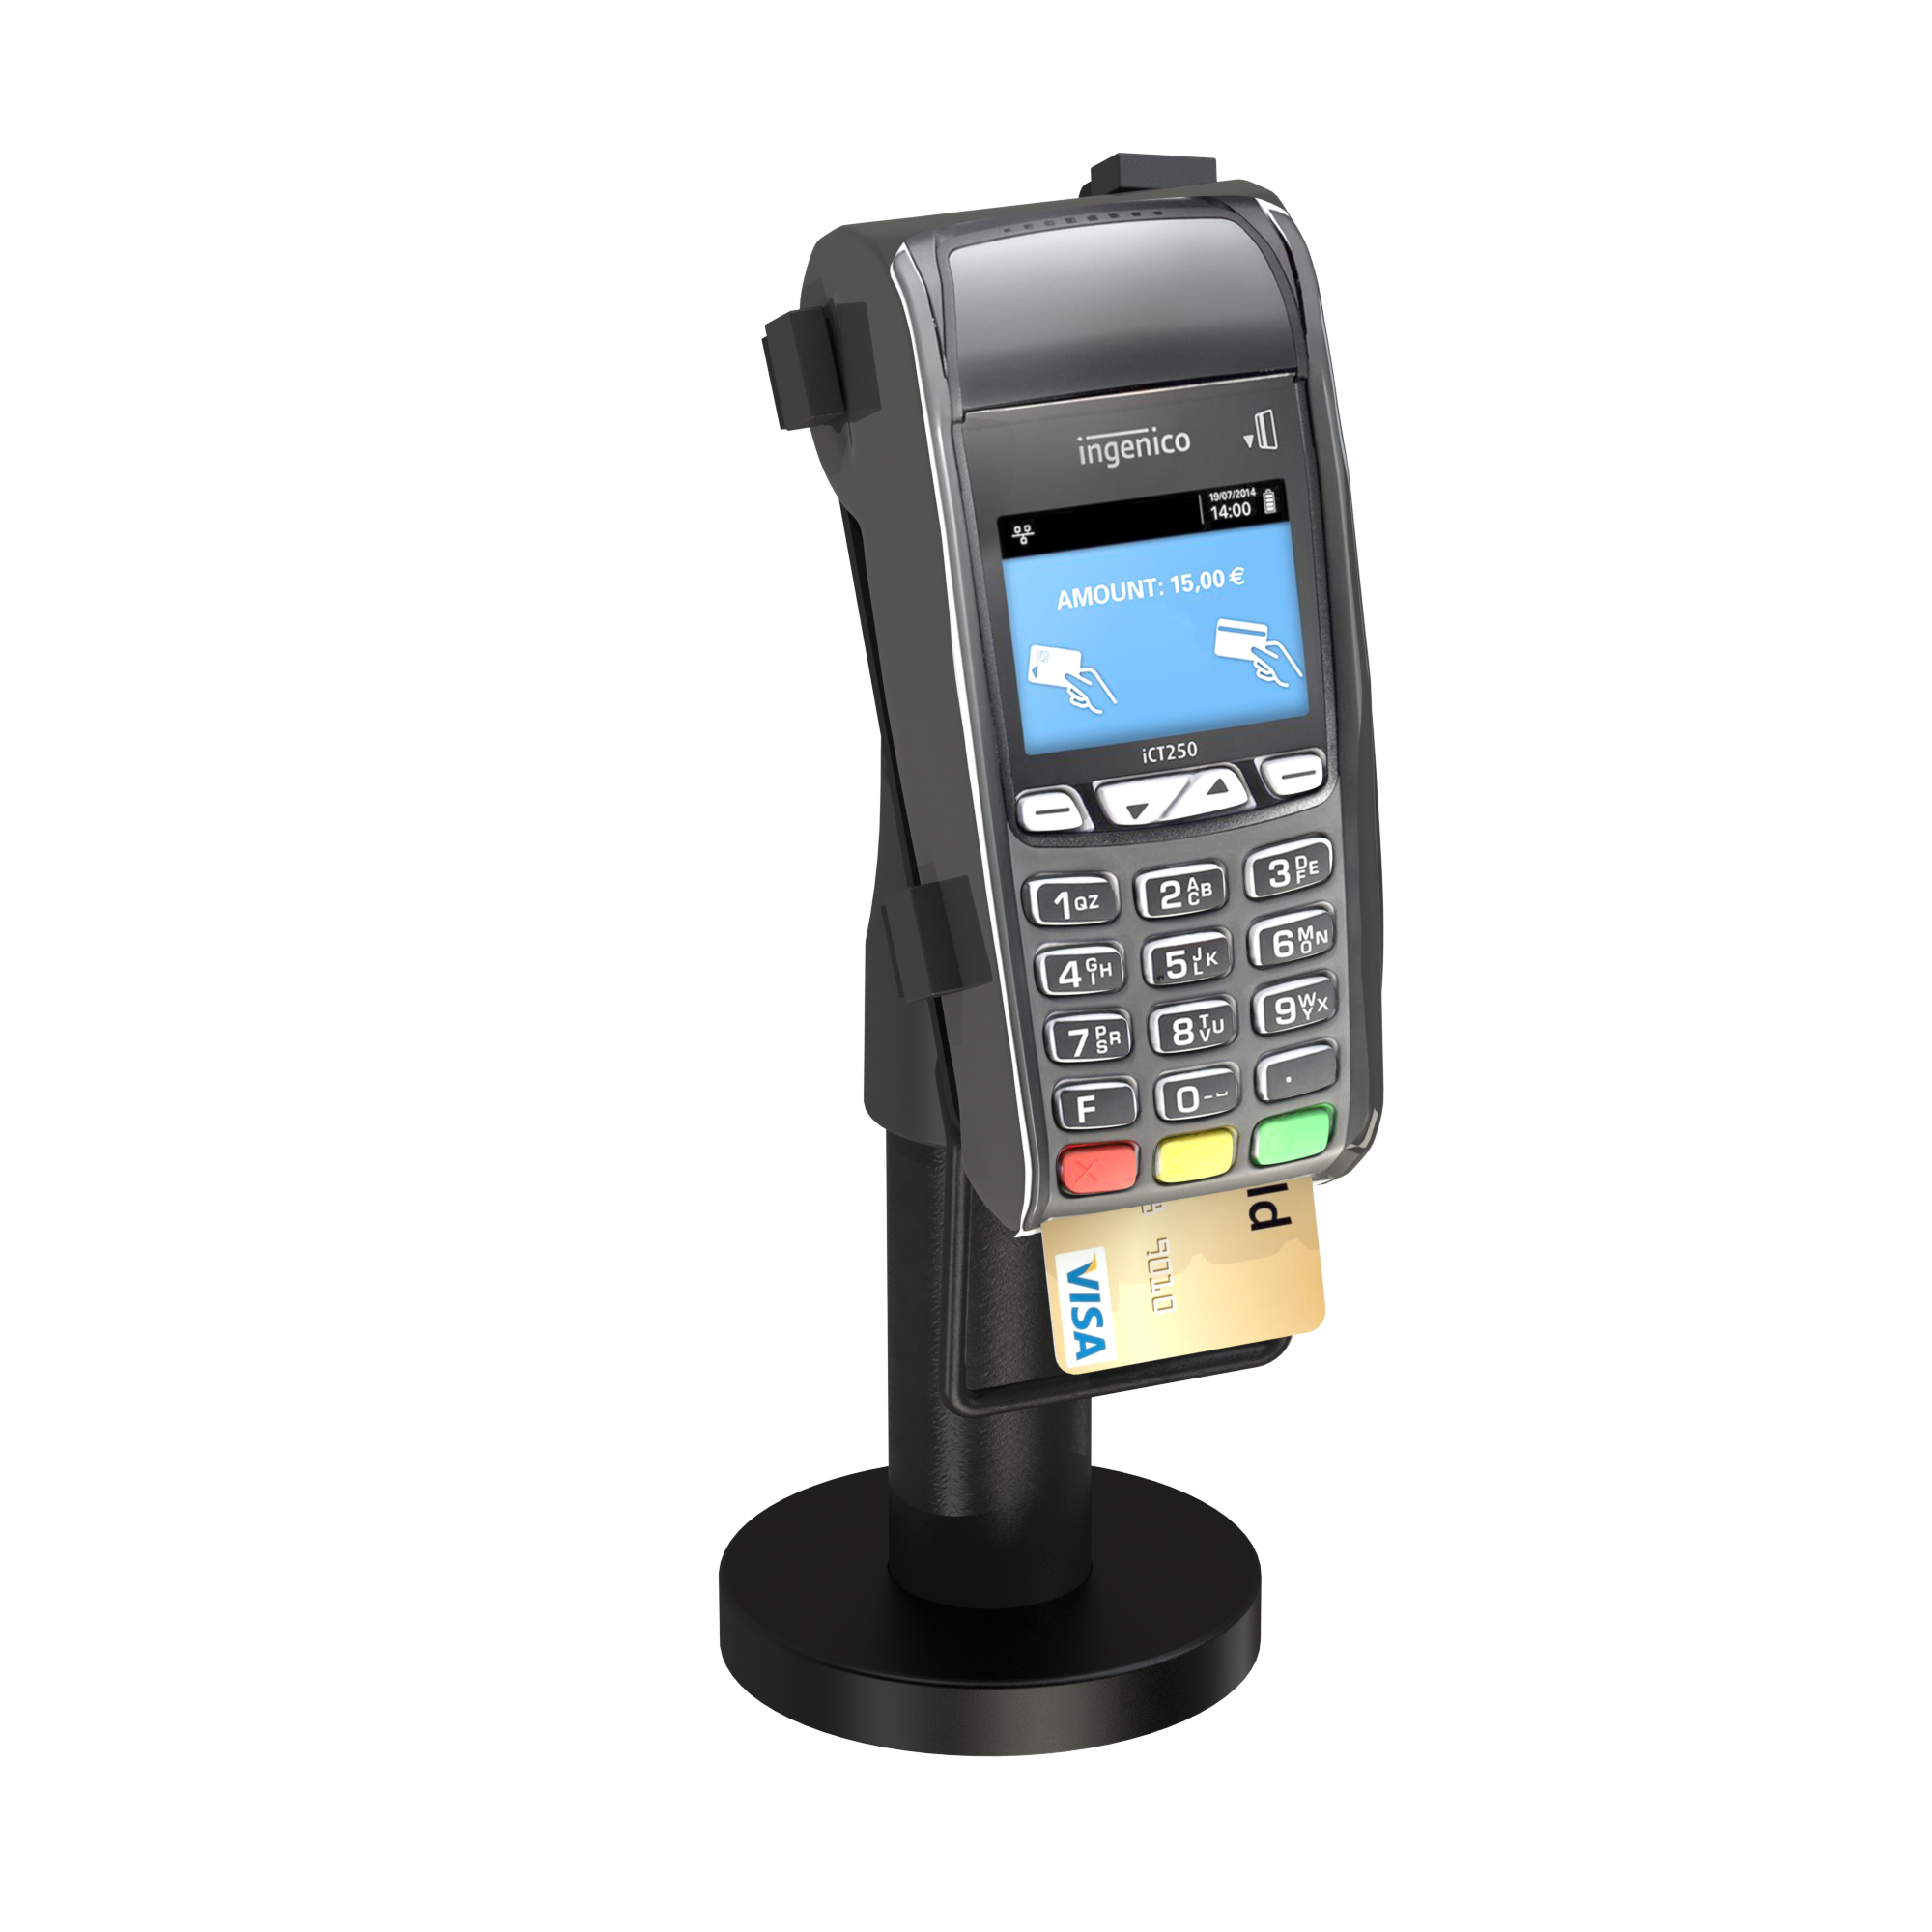 point of payment stand for EFT POS Credit Card Payment Terminal